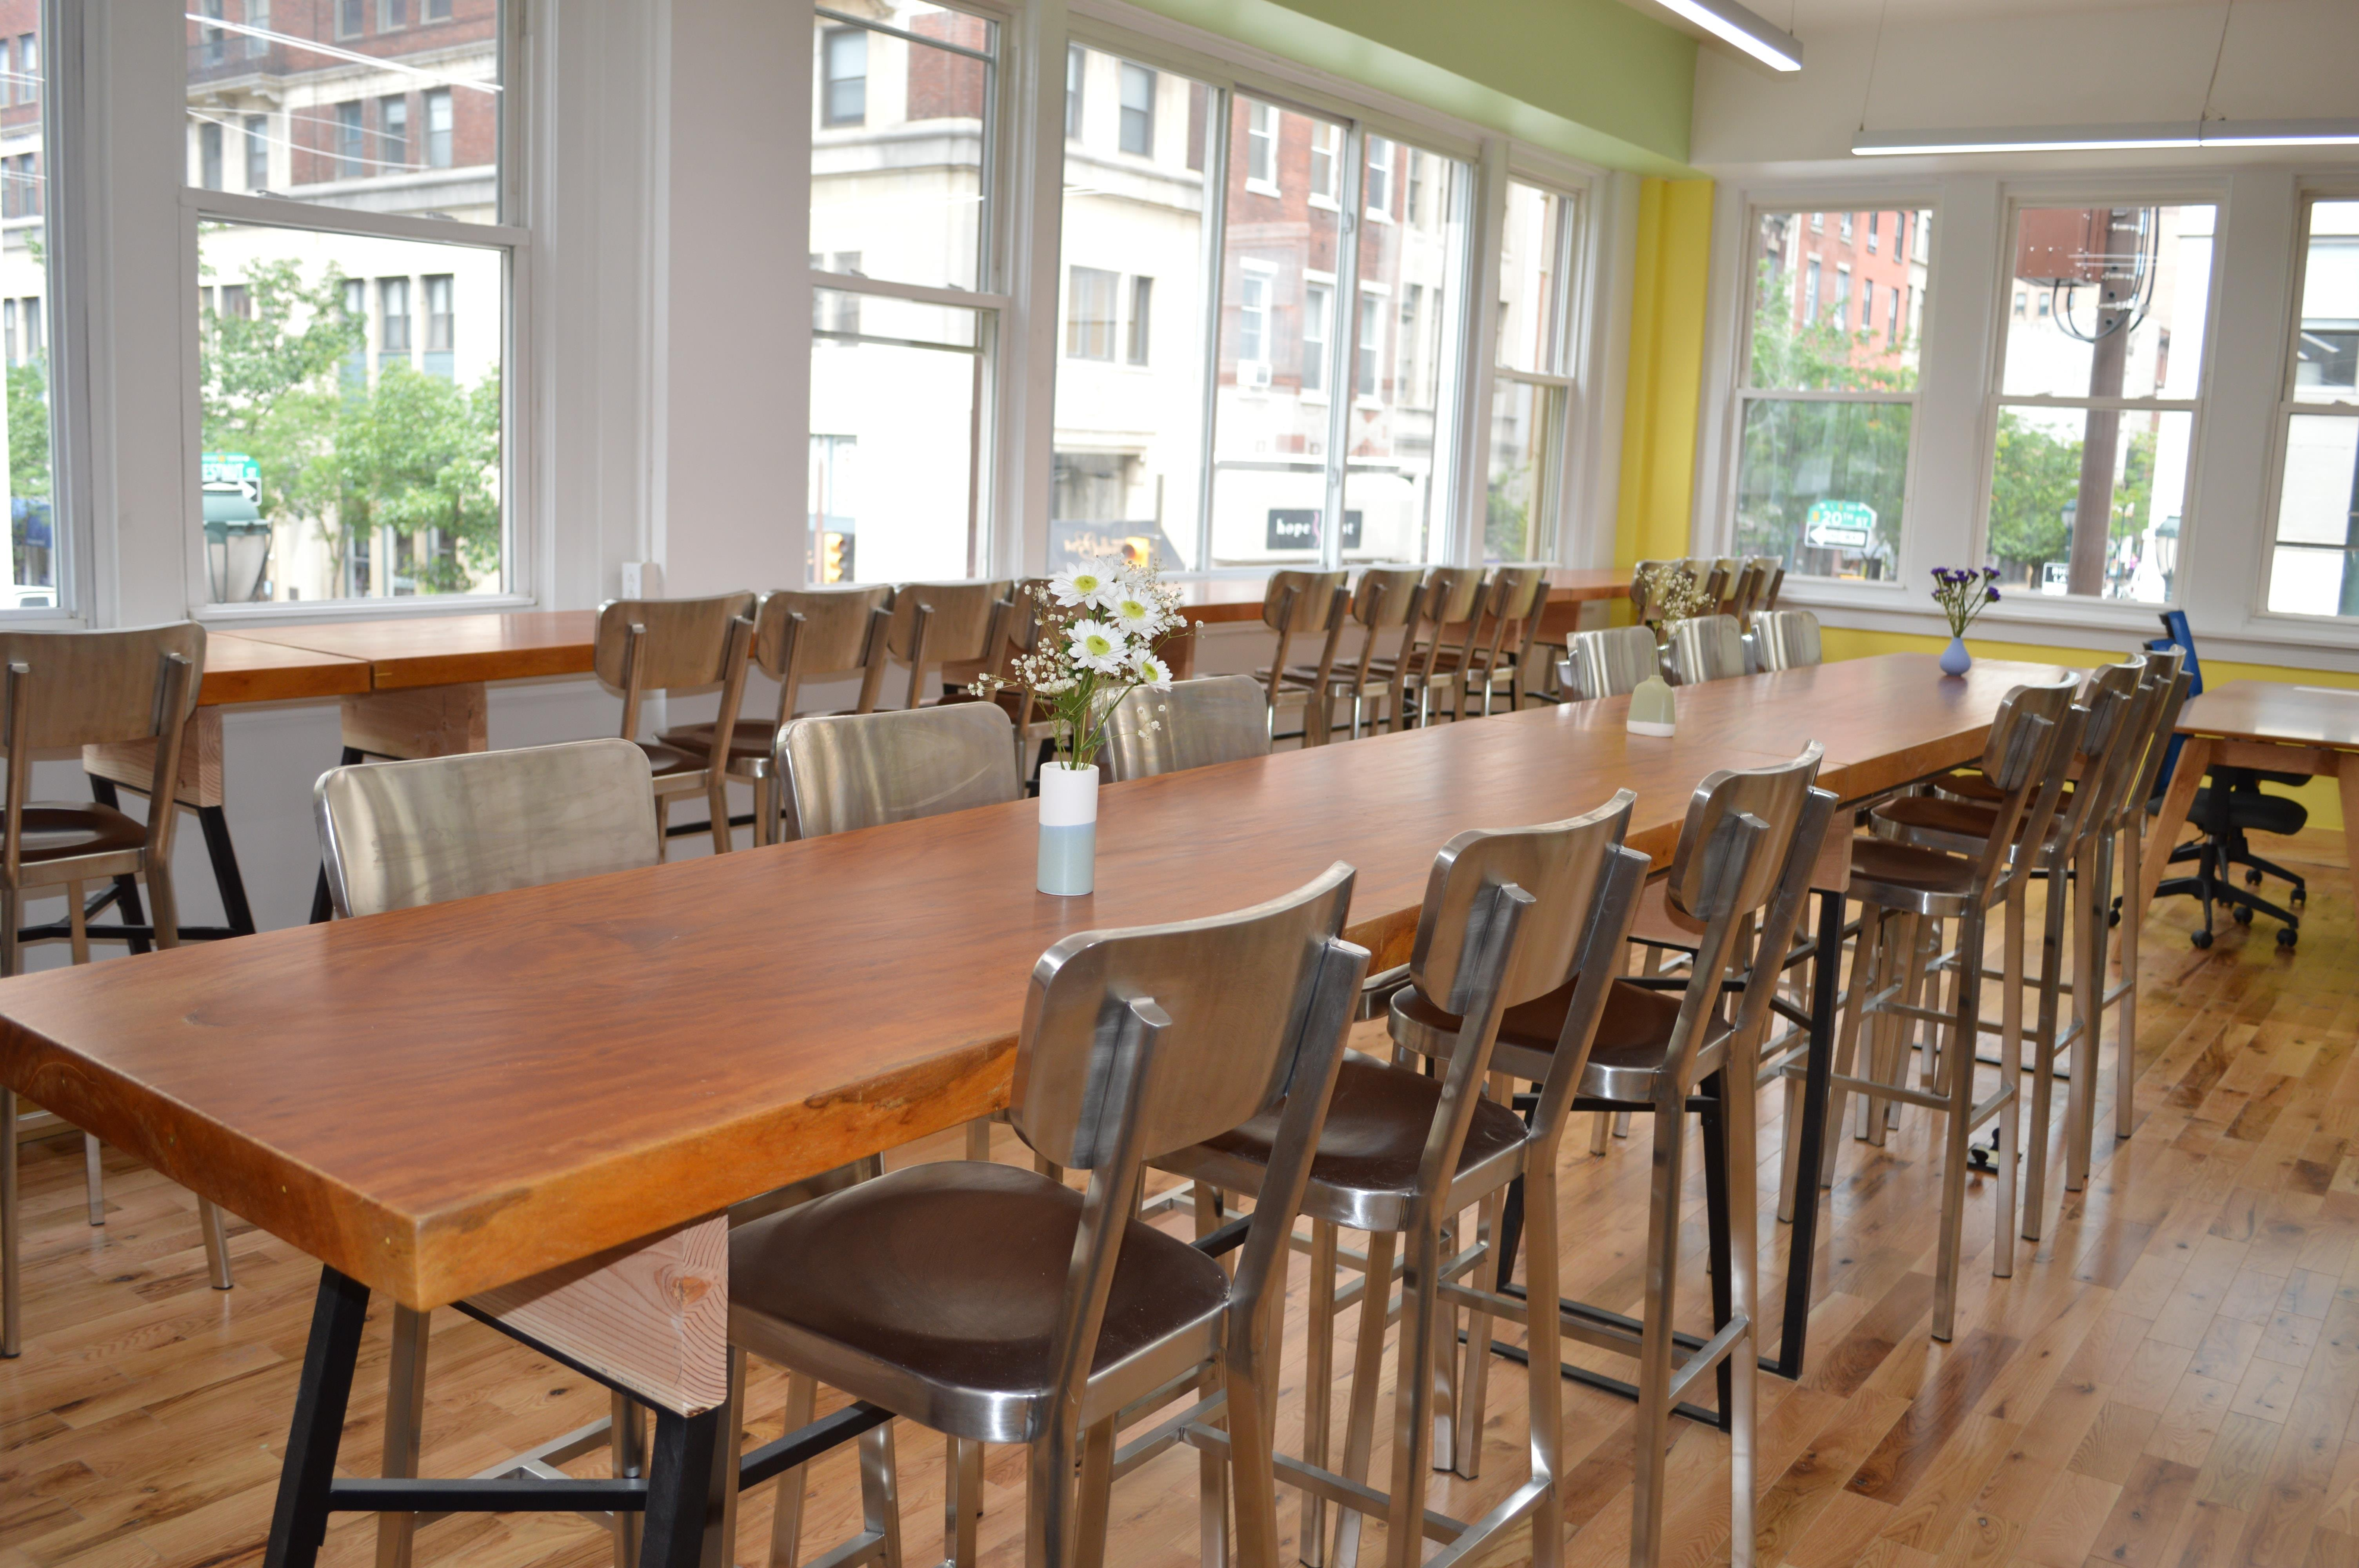 Task Up - Meeting Space for 20